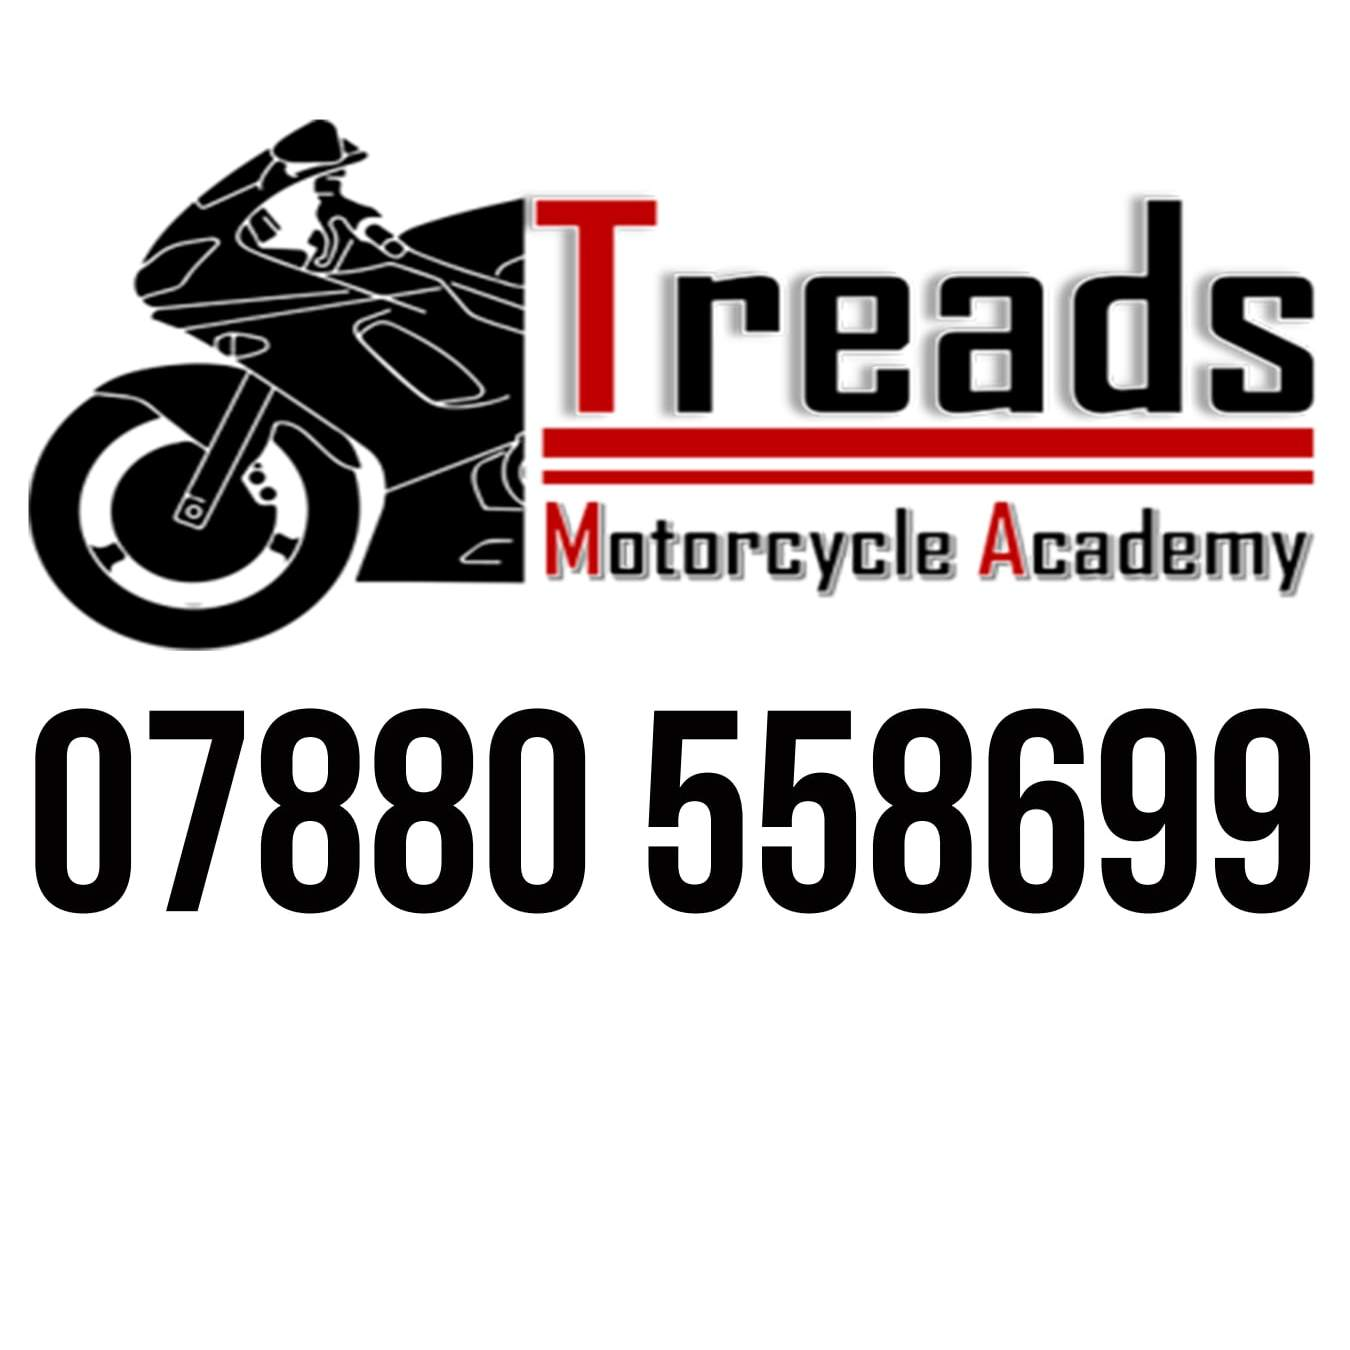 Treads Motorcycle Academy - Beverley, West Yorkshire HU17 0NT - 07880 558699 | ShowMeLocal.com